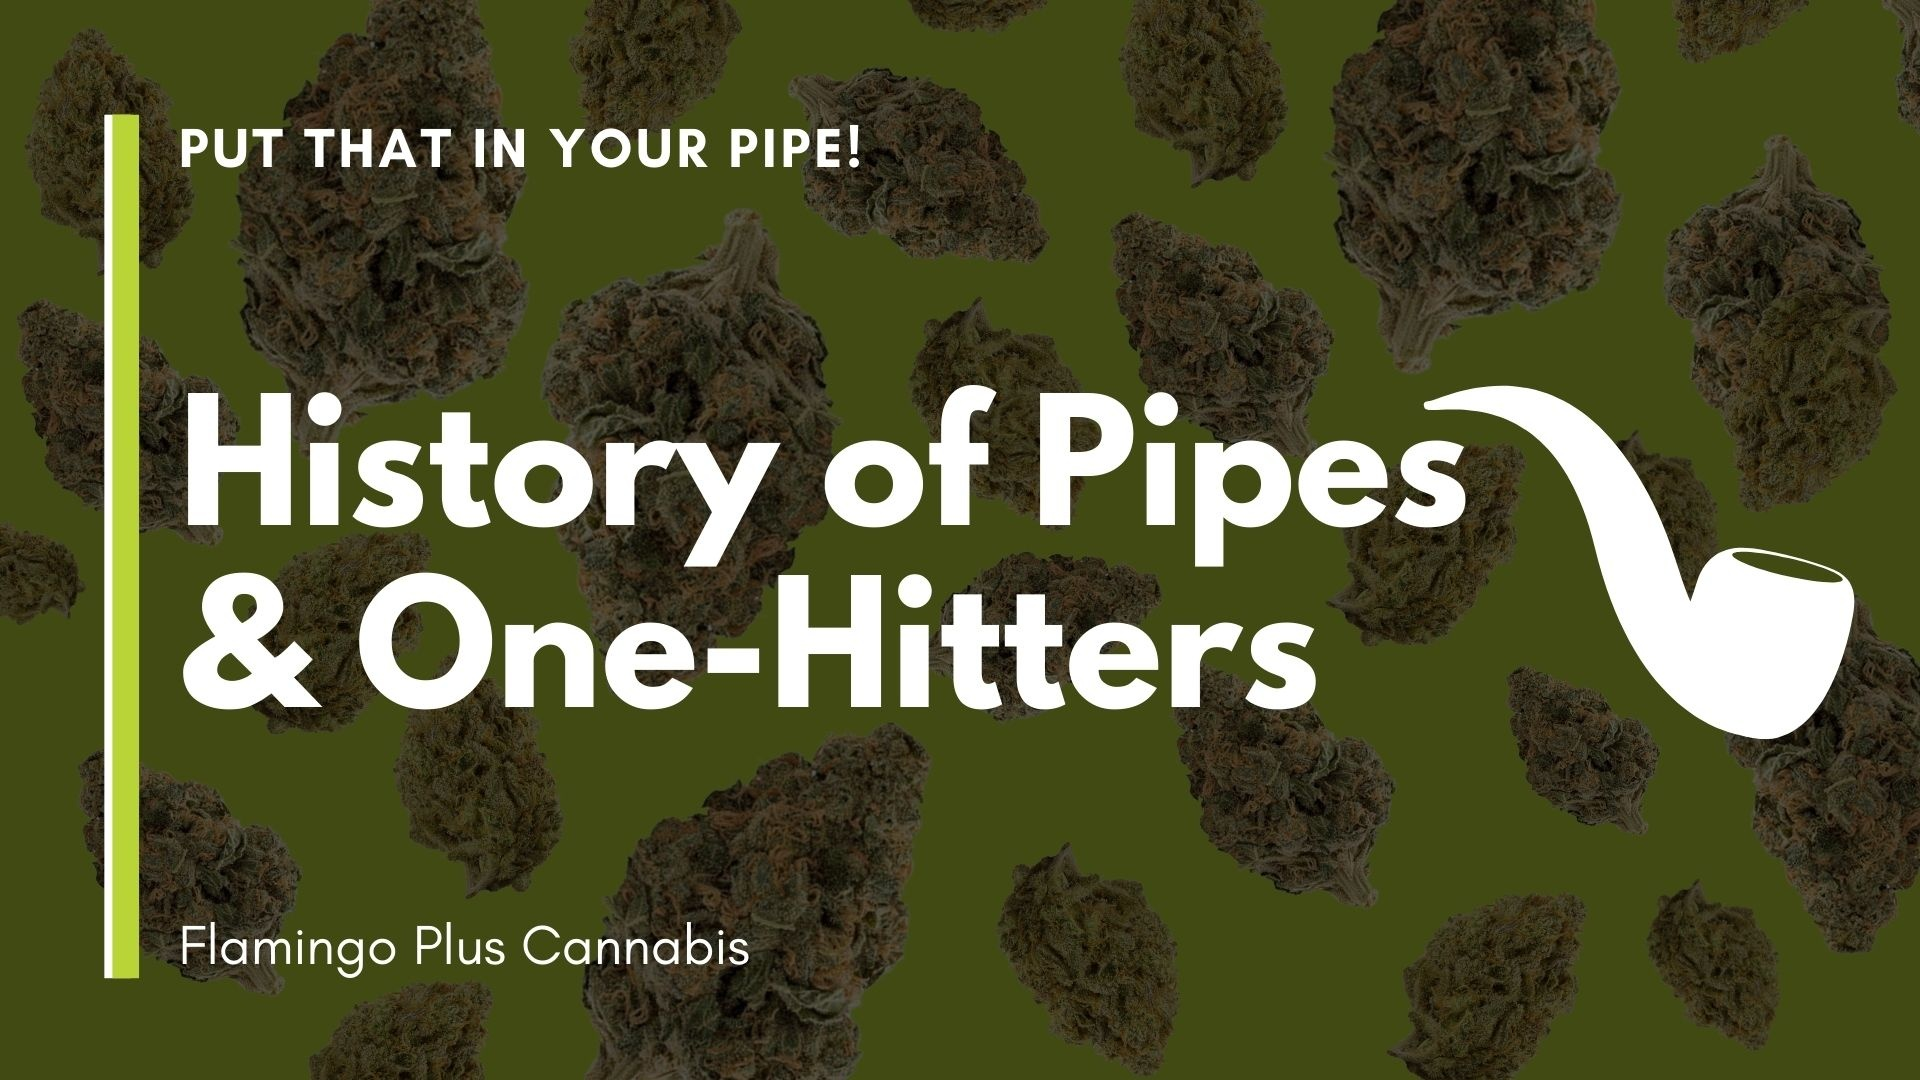 History of Pipes & One-Hitters